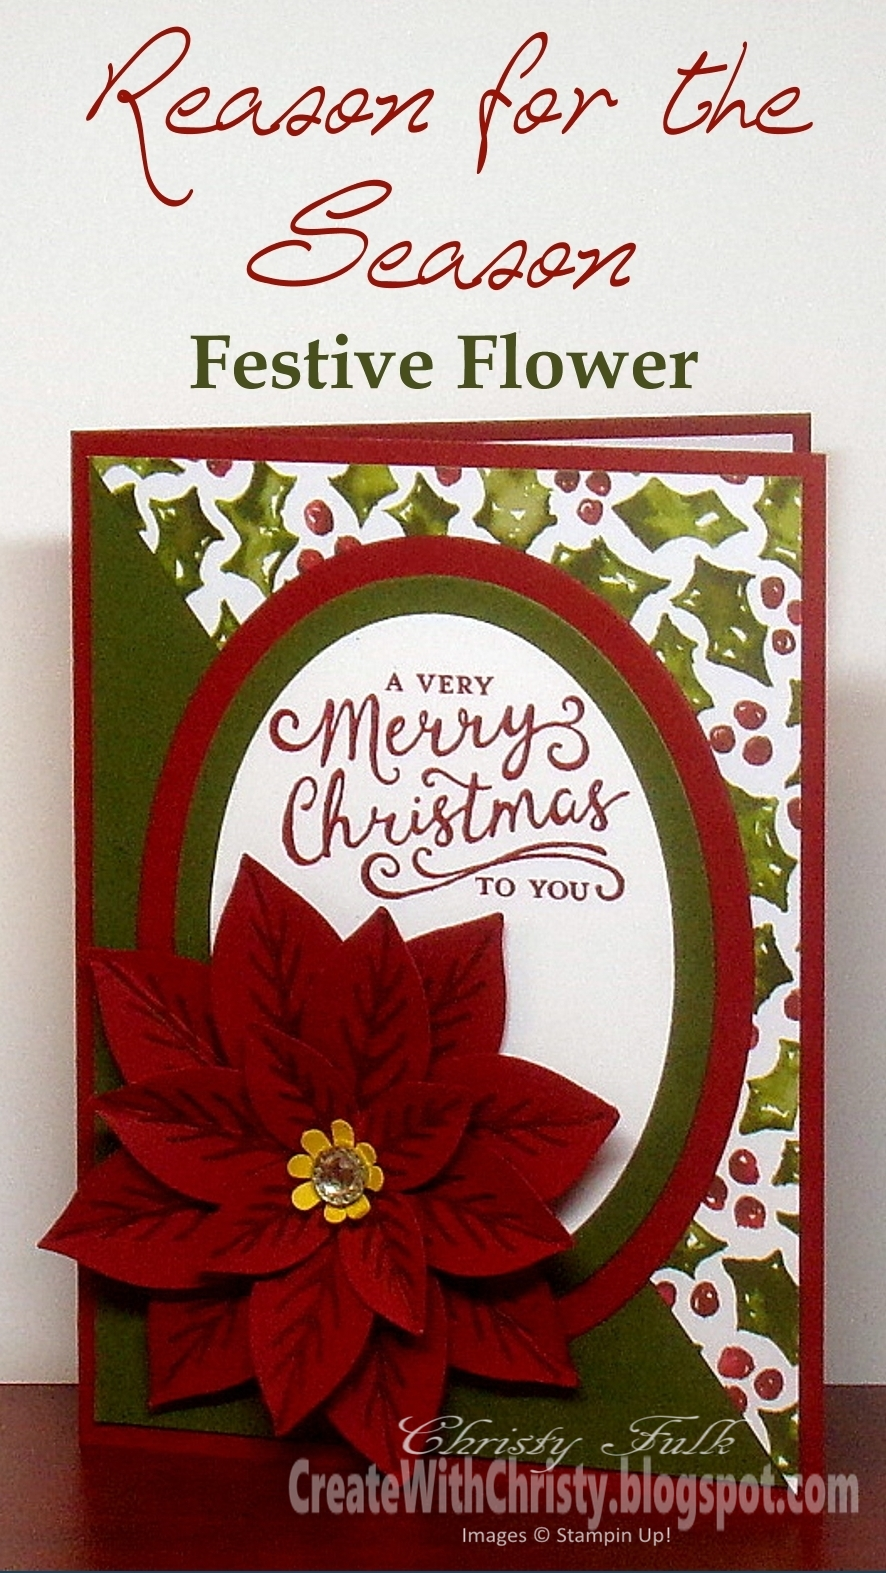 Shop for Jesus Is The Reason For The Season Greeting Cards, invitations, greeting cards, thank you cards, journals, postcards and calendars in thousands of beautiful designs.